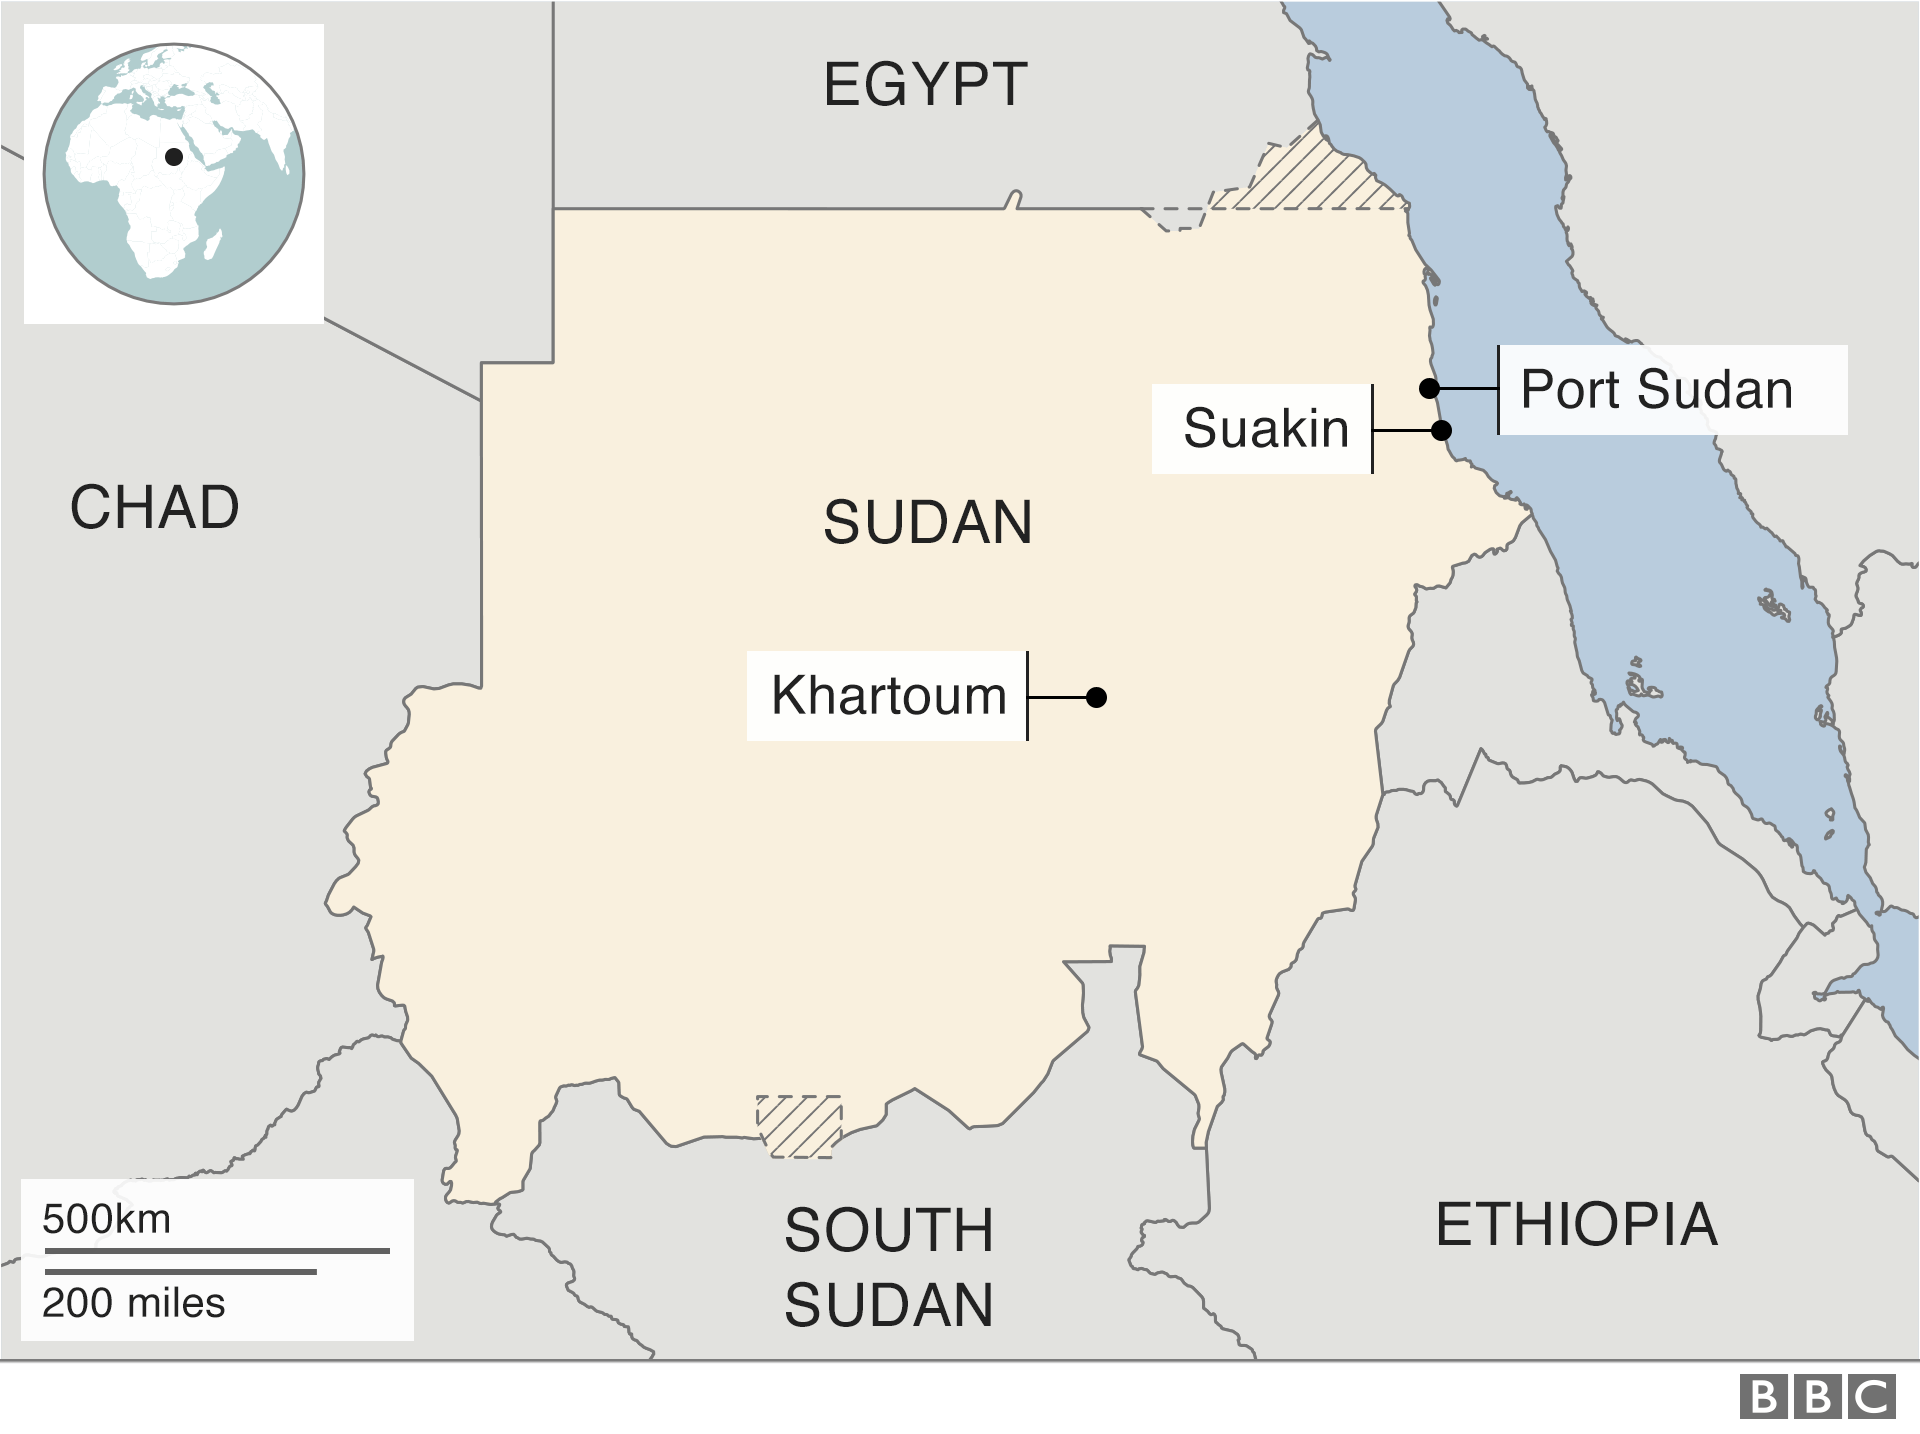 Sudan: Is it being exploited by foreign powers? - BBC News